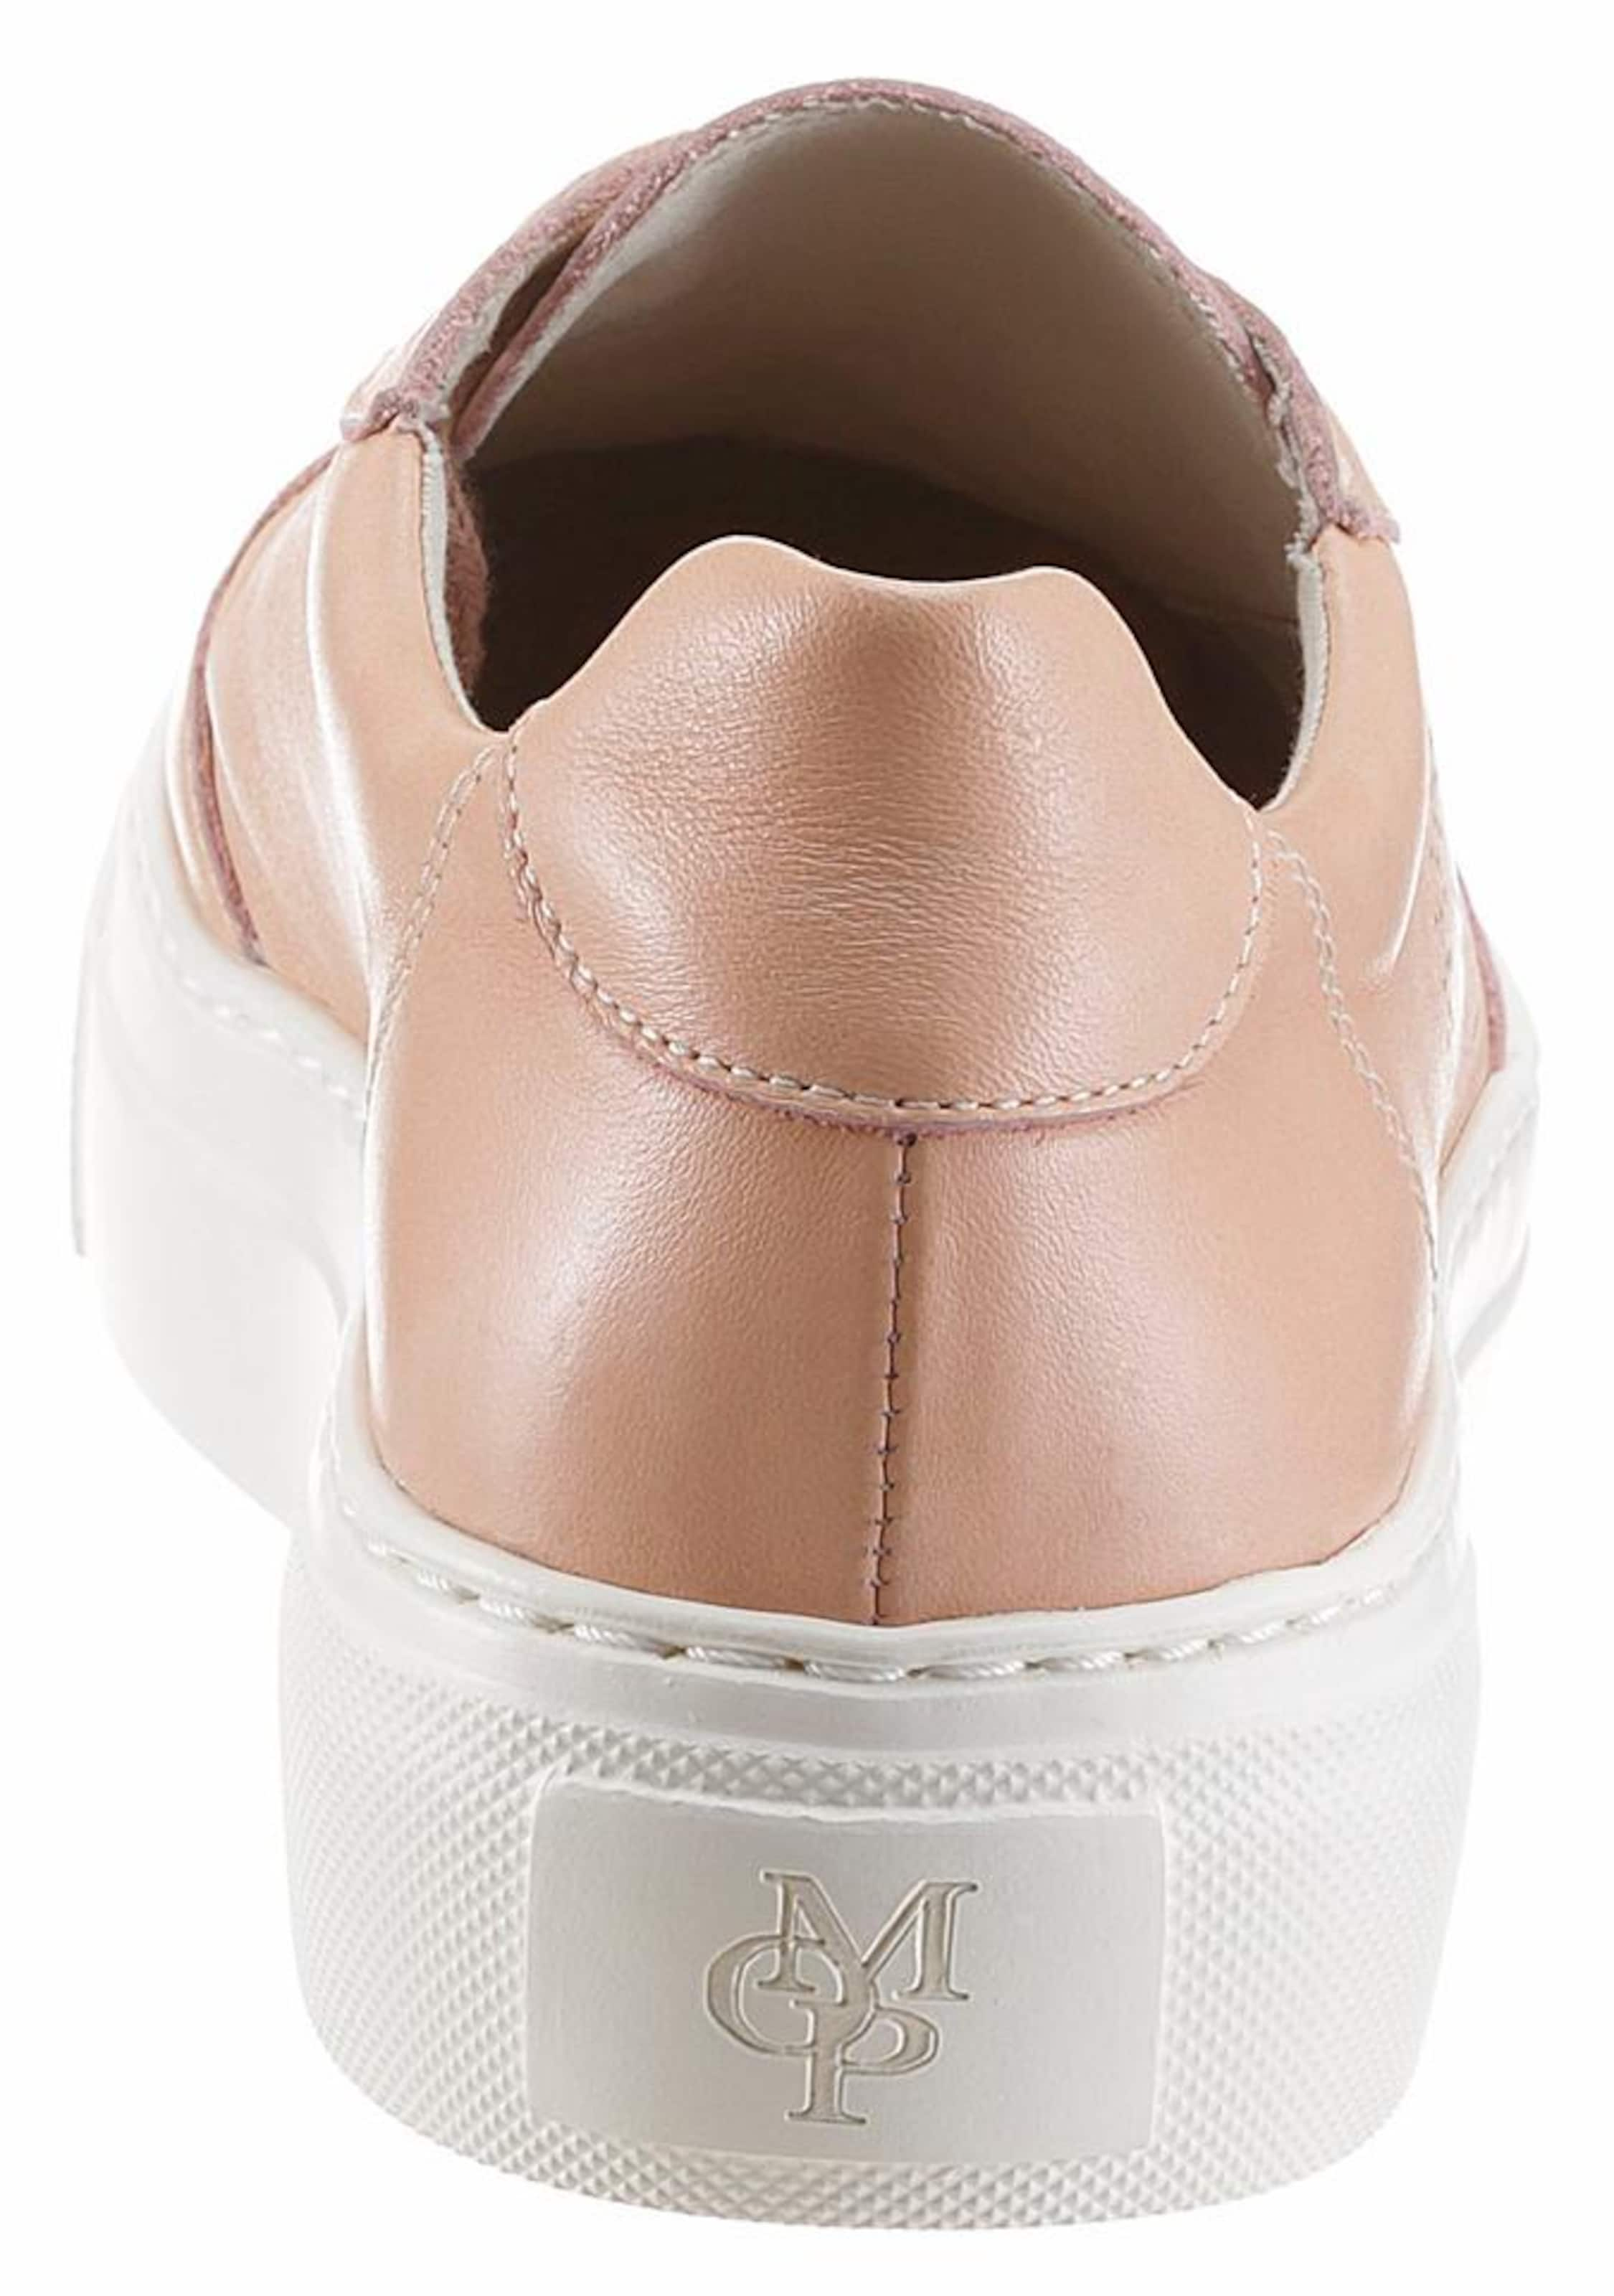 Pfirsich Sneaker Marc In Marc O'polo 8nwmN0